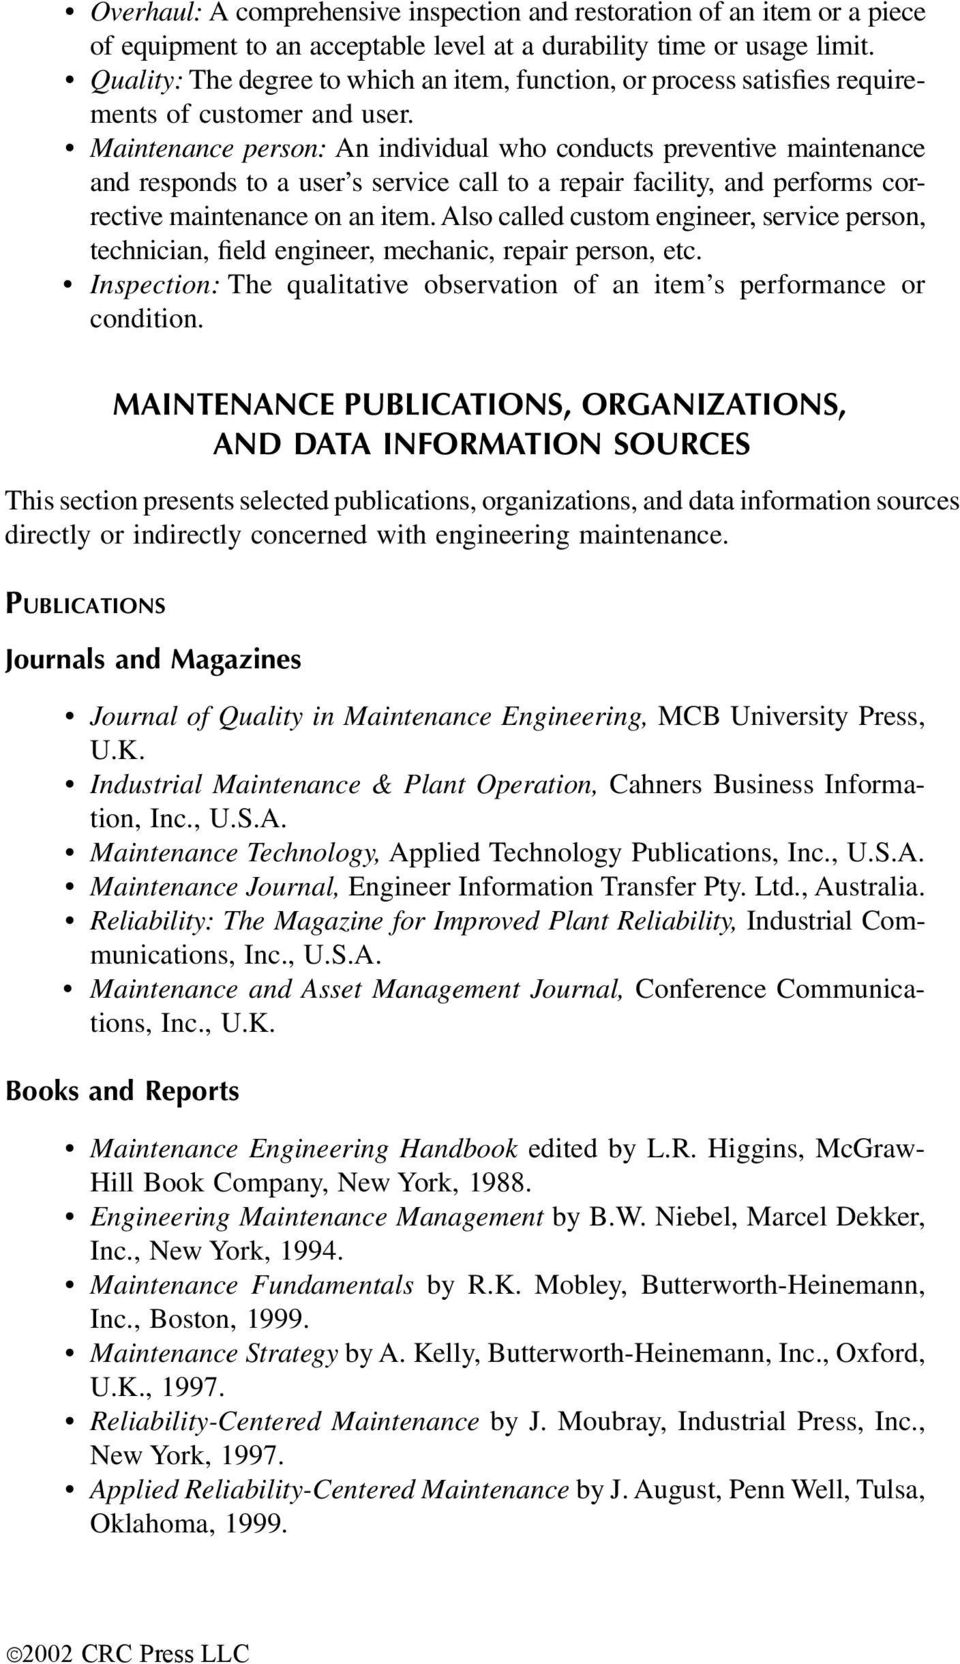 industrial maintenance reference guide mcgraw hill engineering reference guide series